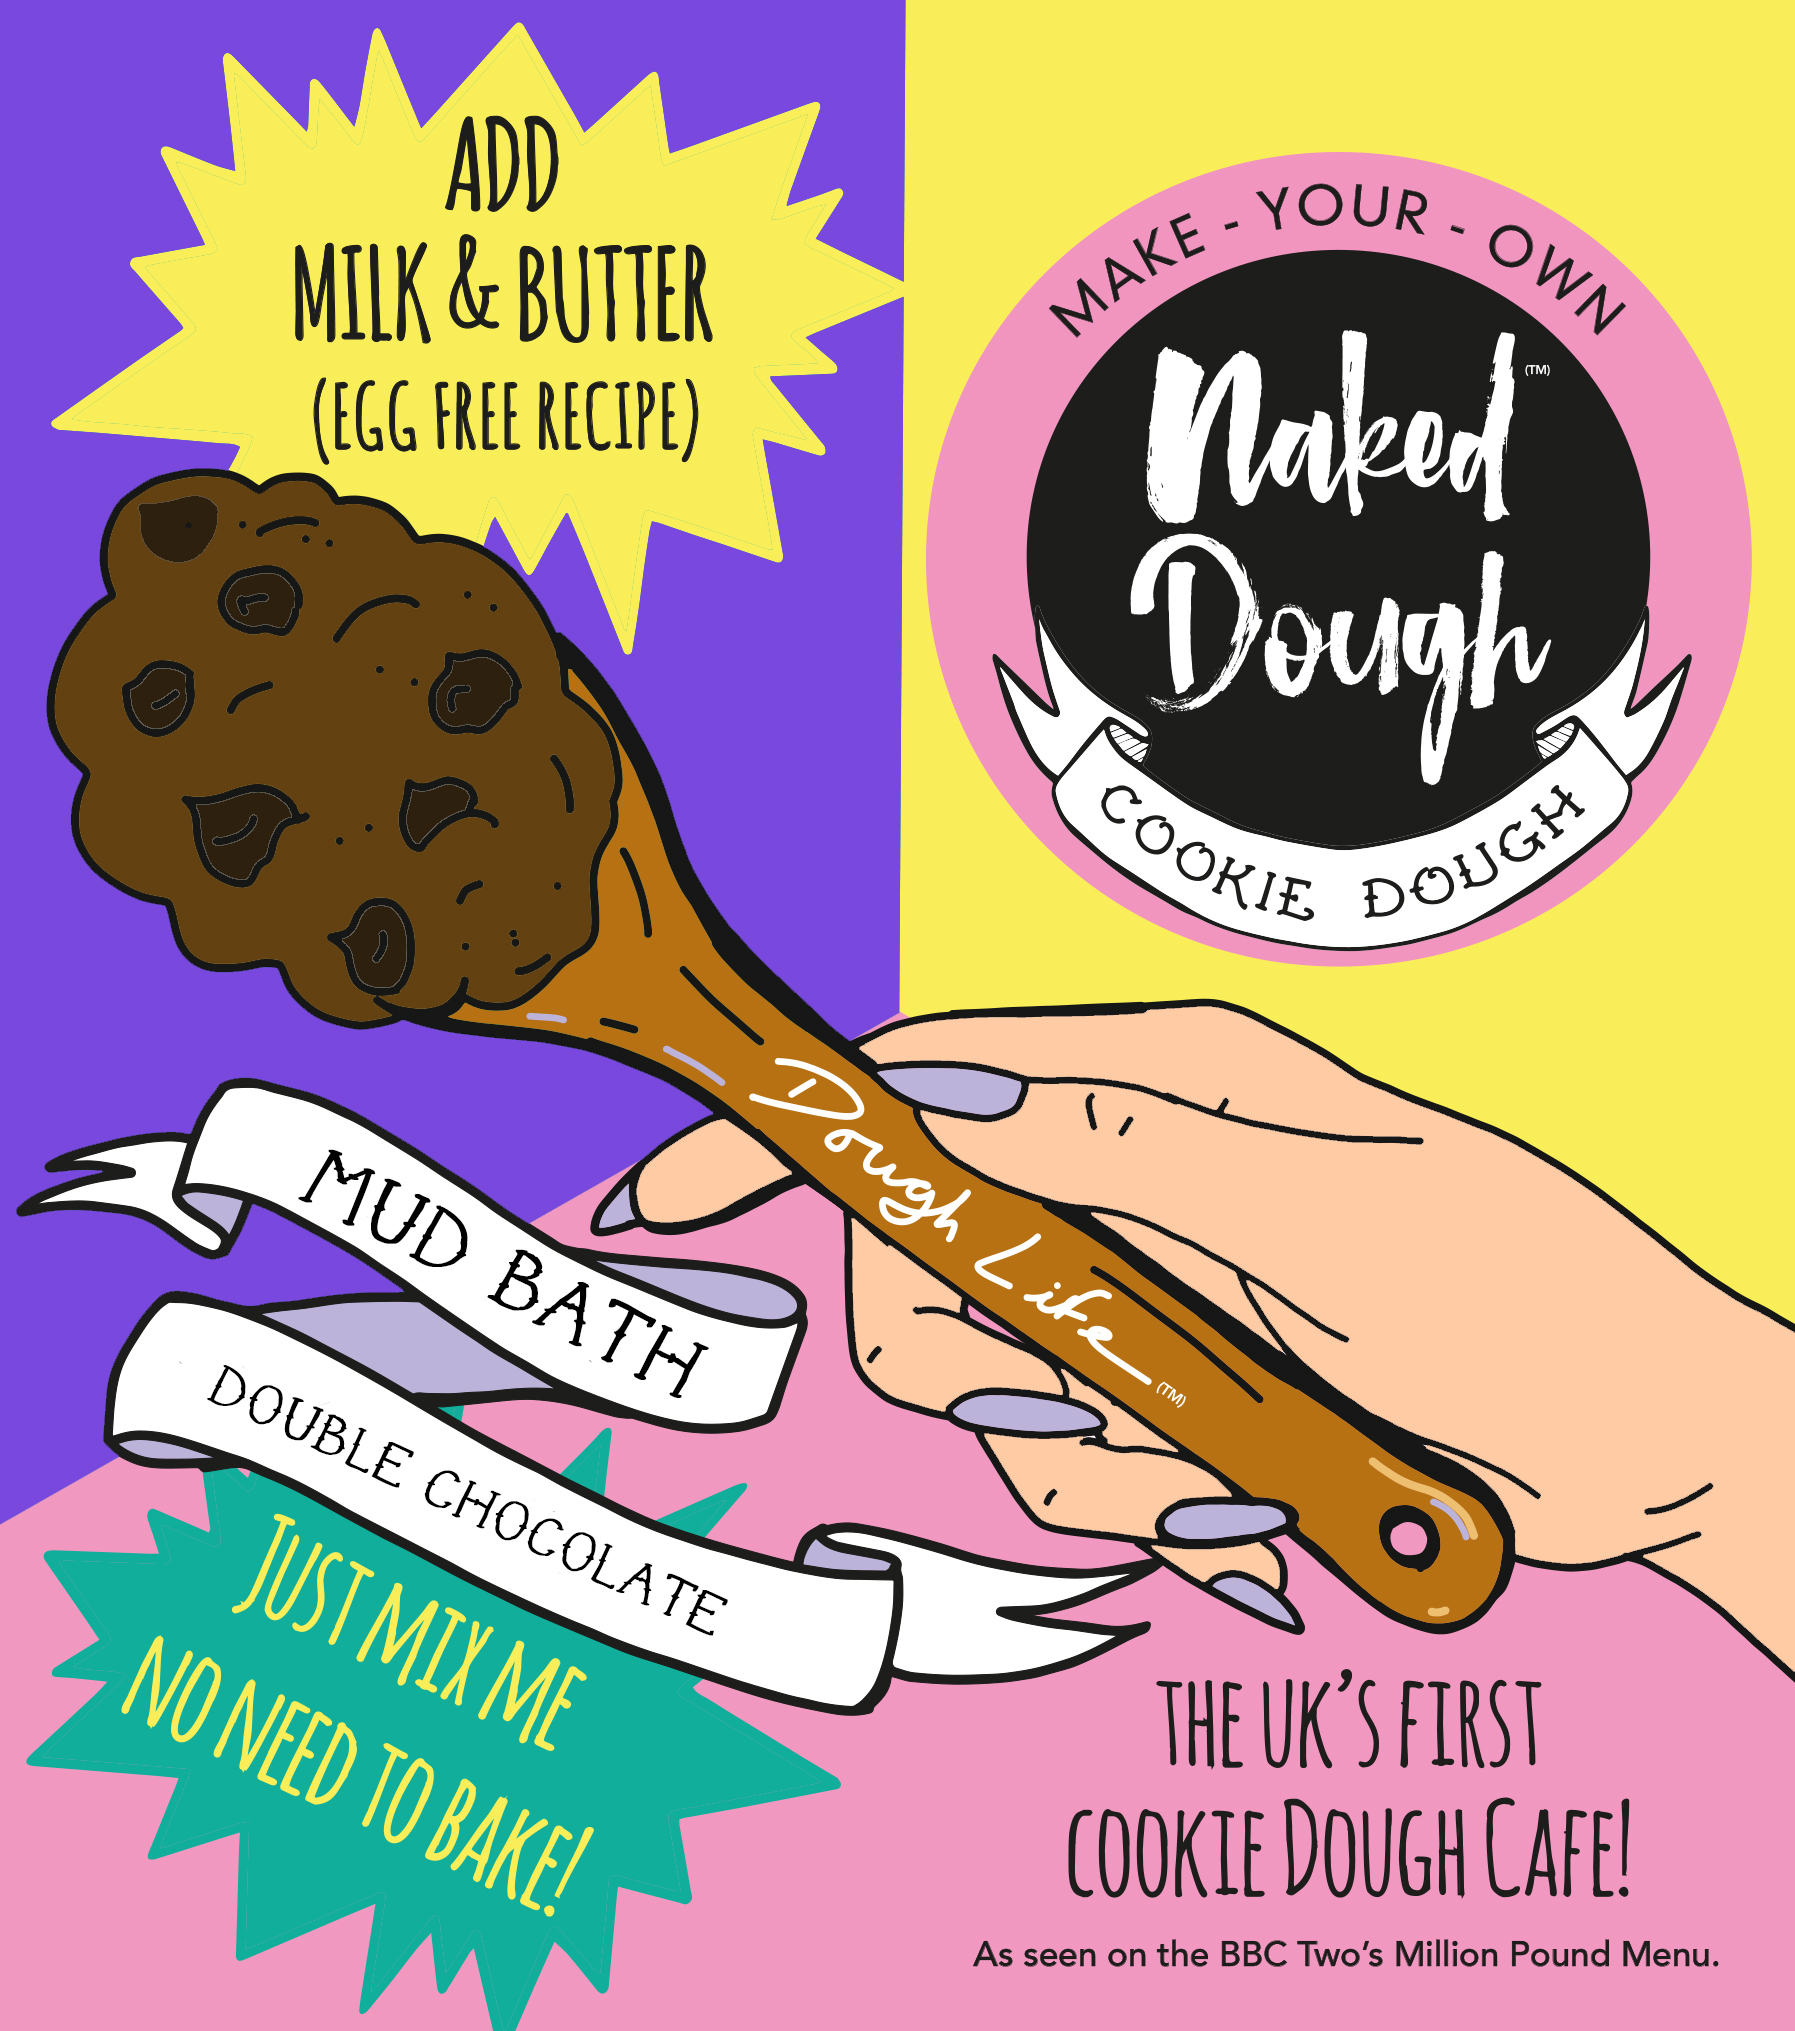 New Naked Dough Make Your Own Pouch in Mud Bath flavour.